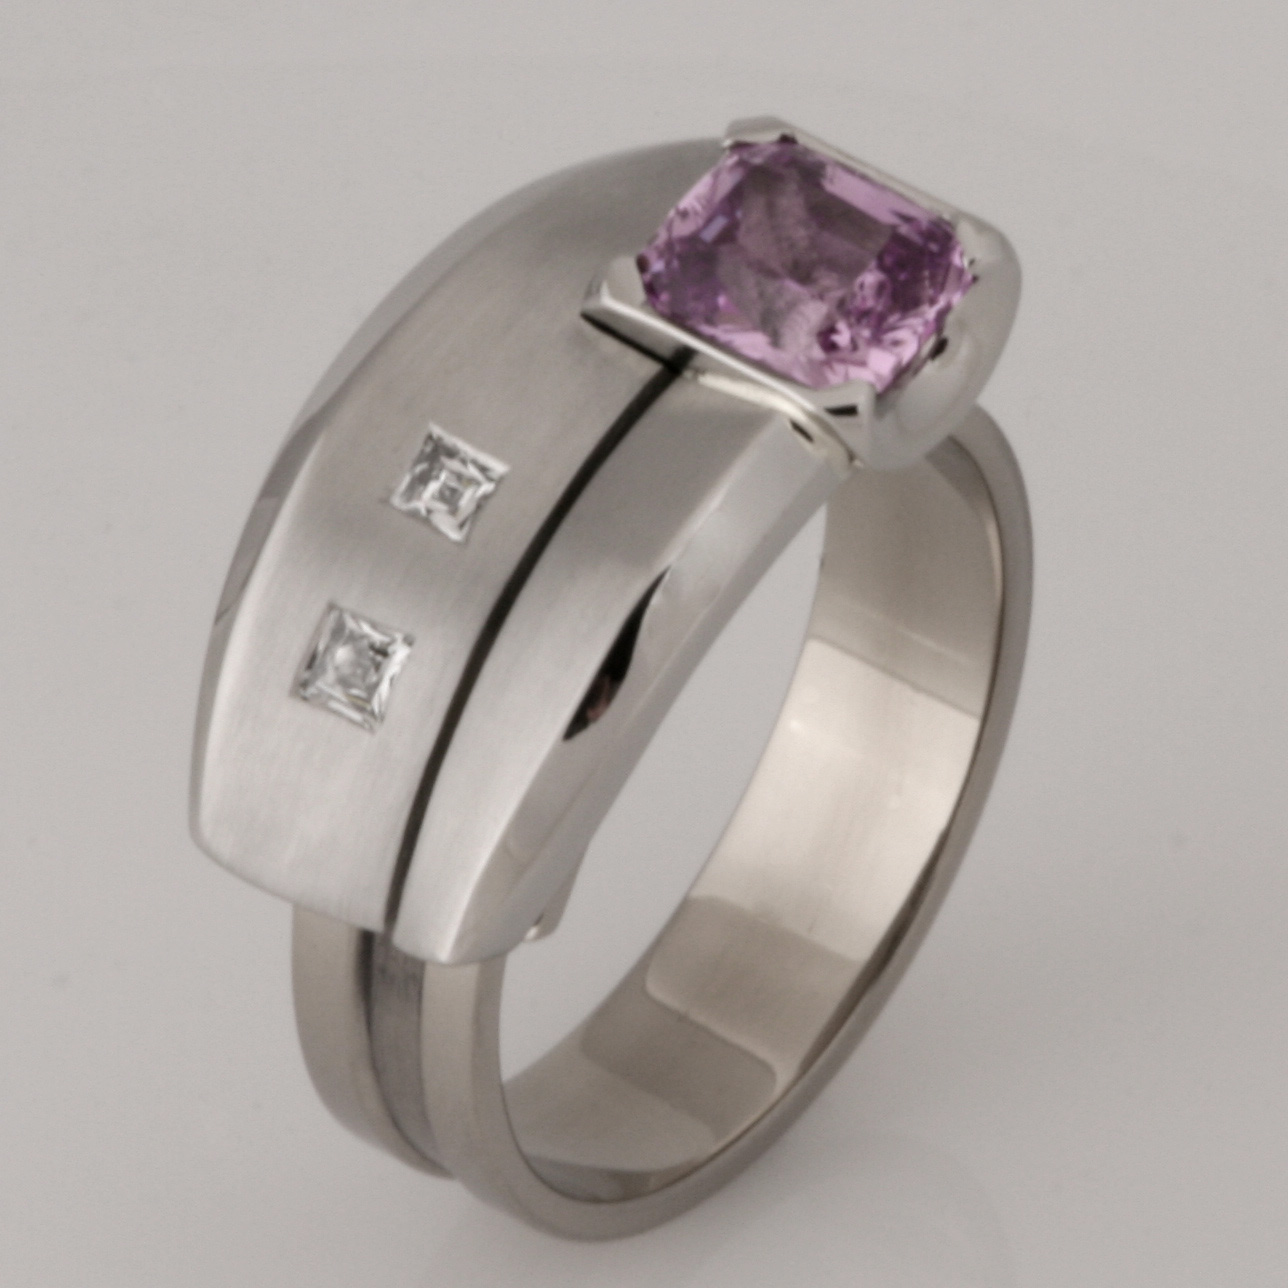 Handmade ladies palladium and 18ct white gold pink sapphire and diamond 'Archie' ring